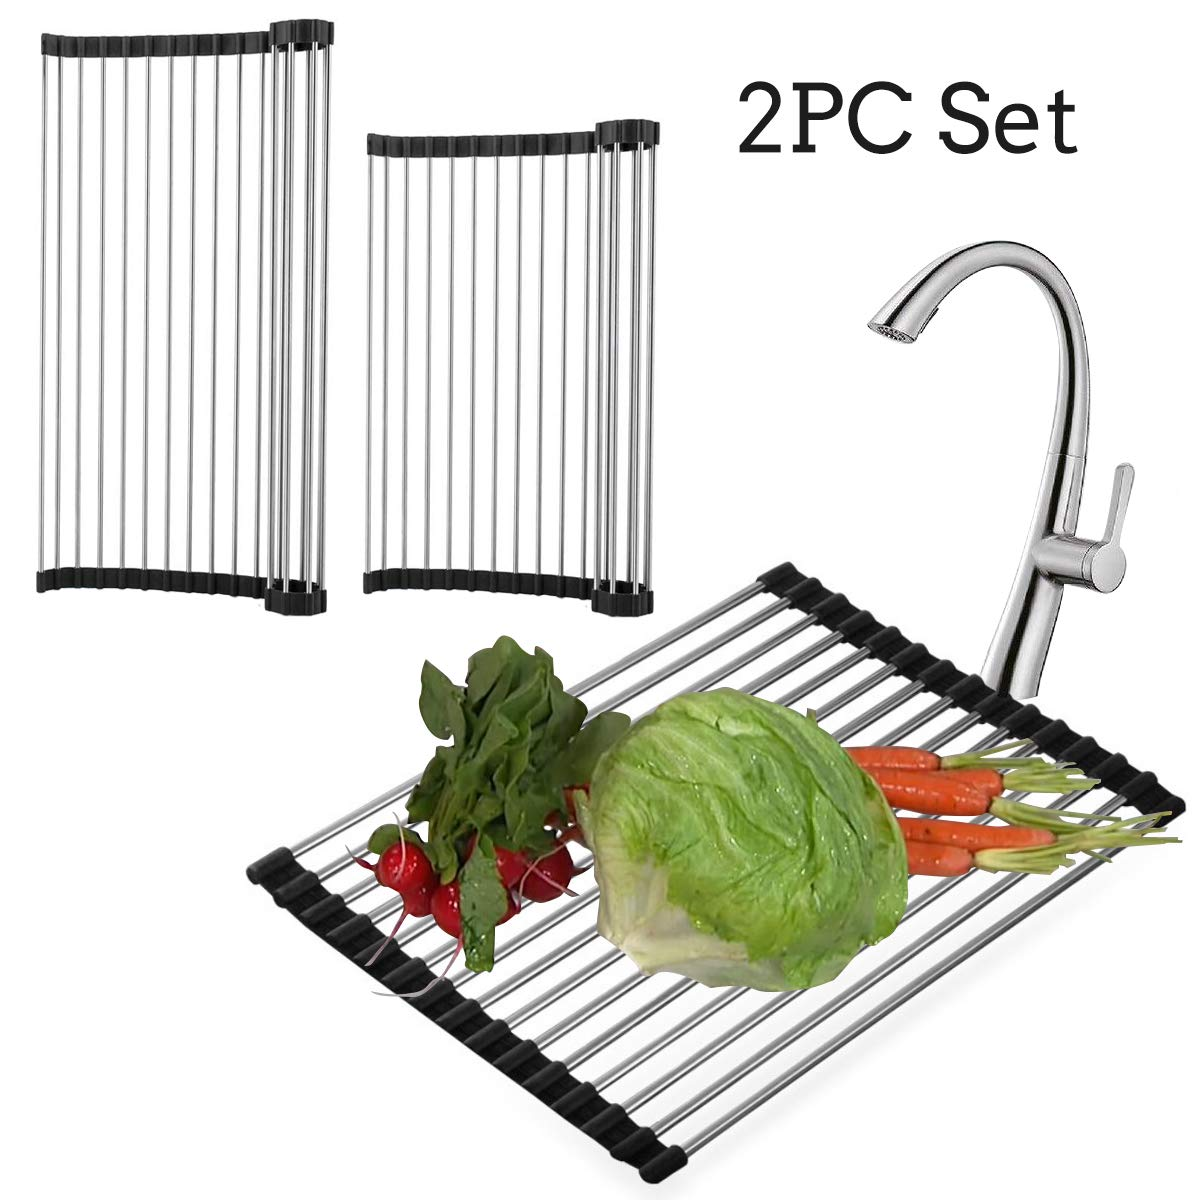 Dish Drying Rack Mat For Sink Kitchen - Stainless Roll Up Collapsible Sponge Dishes Drainer Over Board, Large Steel Foldable Cutting Dry Storage Mats For Fruit Vegetable Bowl Bottle Towel Holder Racks